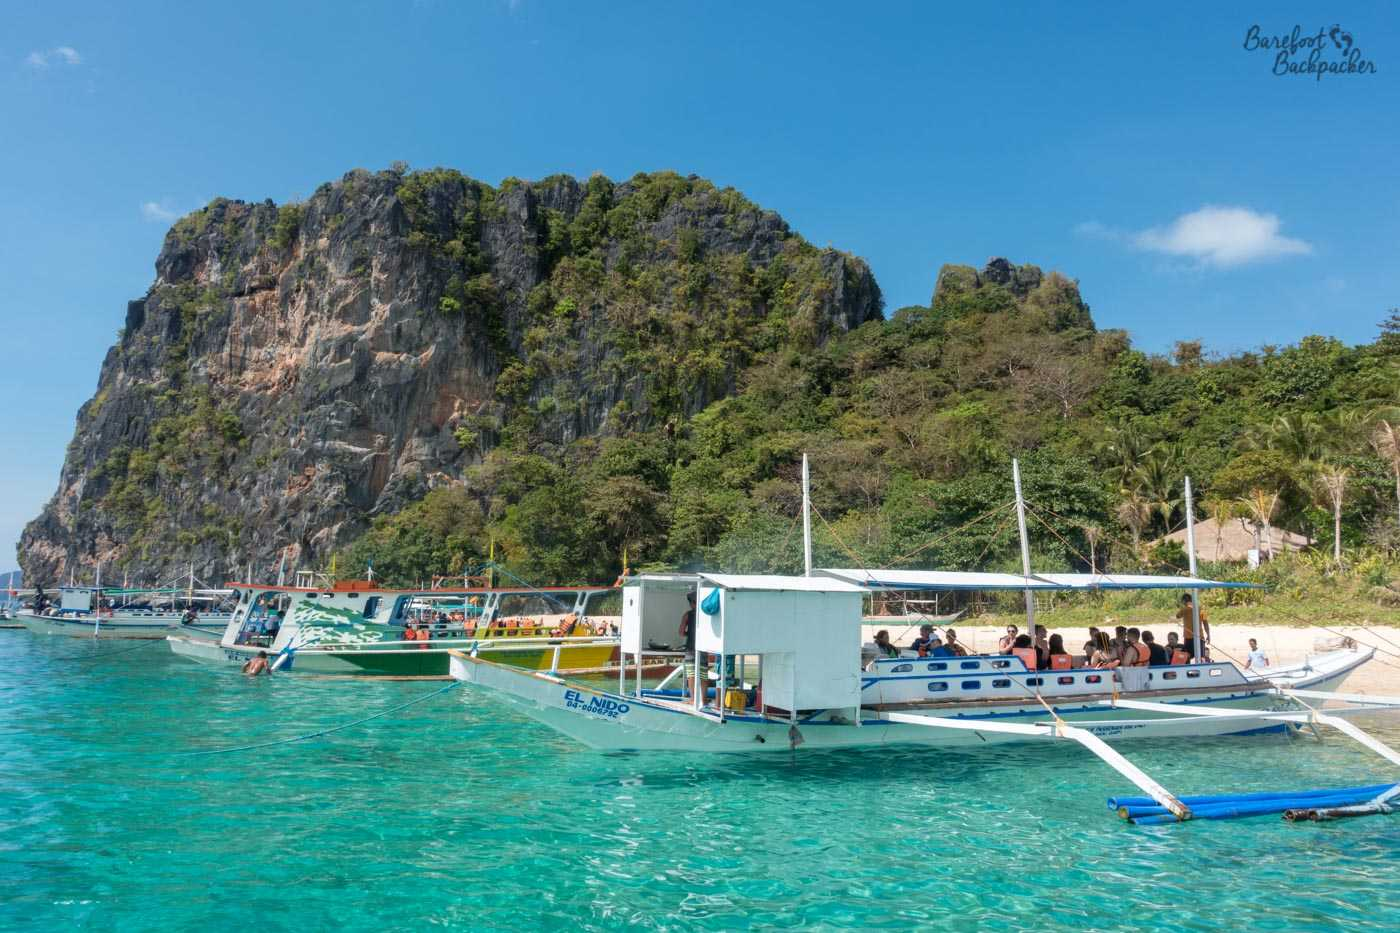 A series of boats full of tourists are lined up in the sea just off the beach of an island in Philippines. The sea is transparent and more green than blue. Behind the boats is a small but towering bush-covered cliff. The sky is very, very blue.